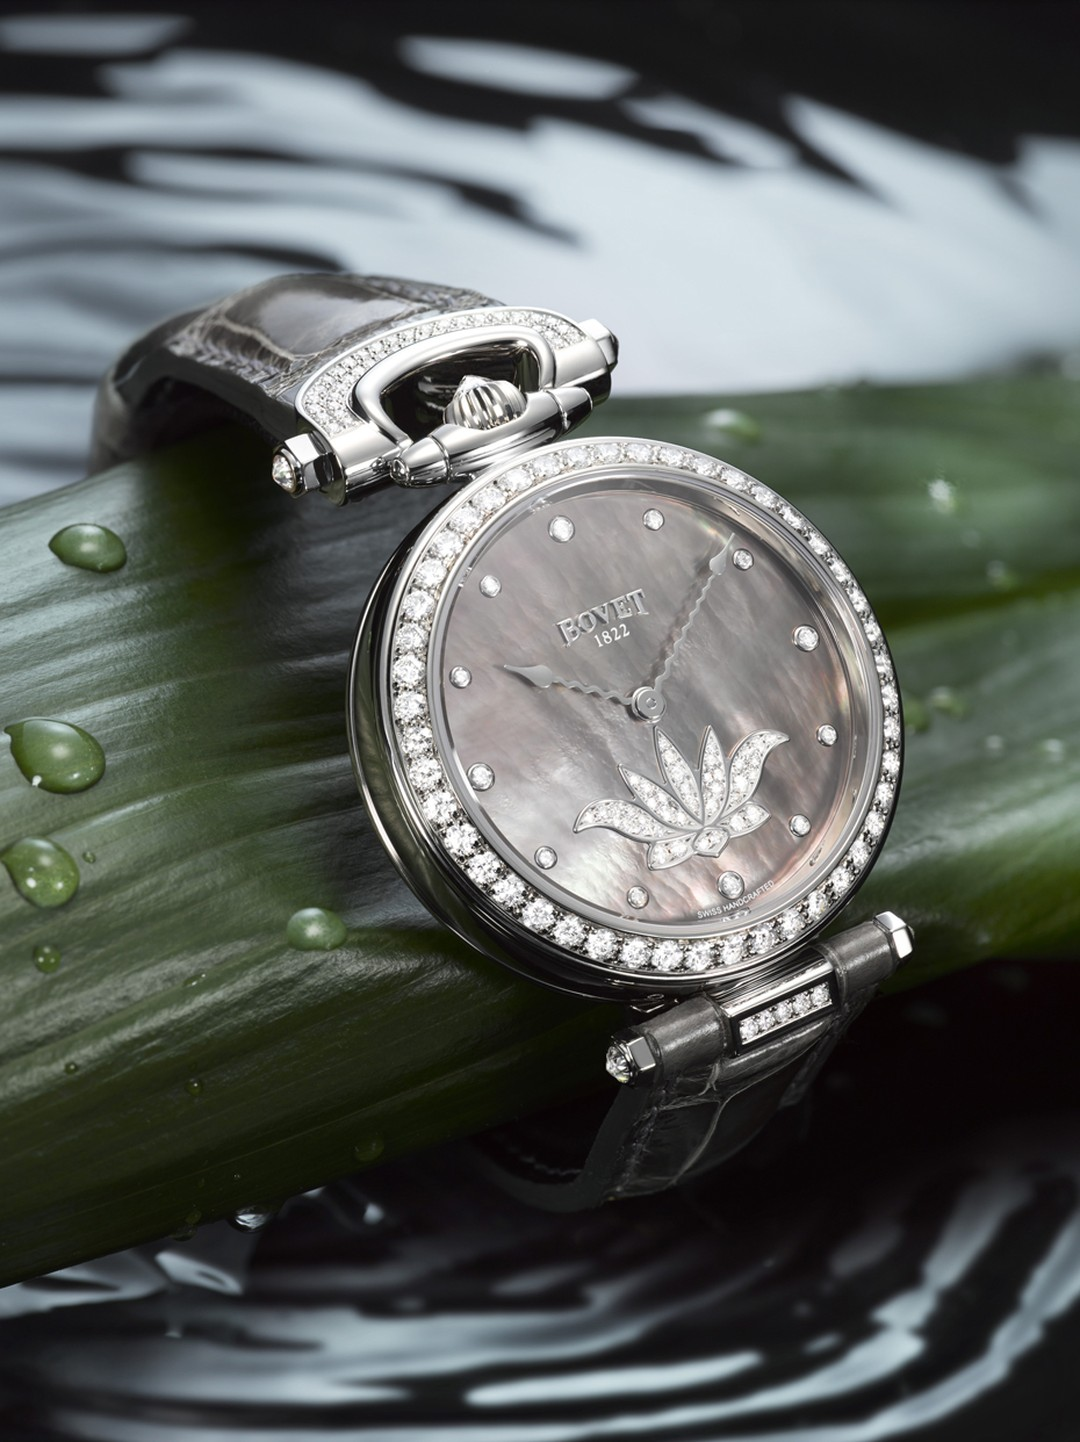 Bovet's 2013 Amadeo® Fleurier 39 Lotus features a mother-of-pearl dial encircled by a diamond-set bezel